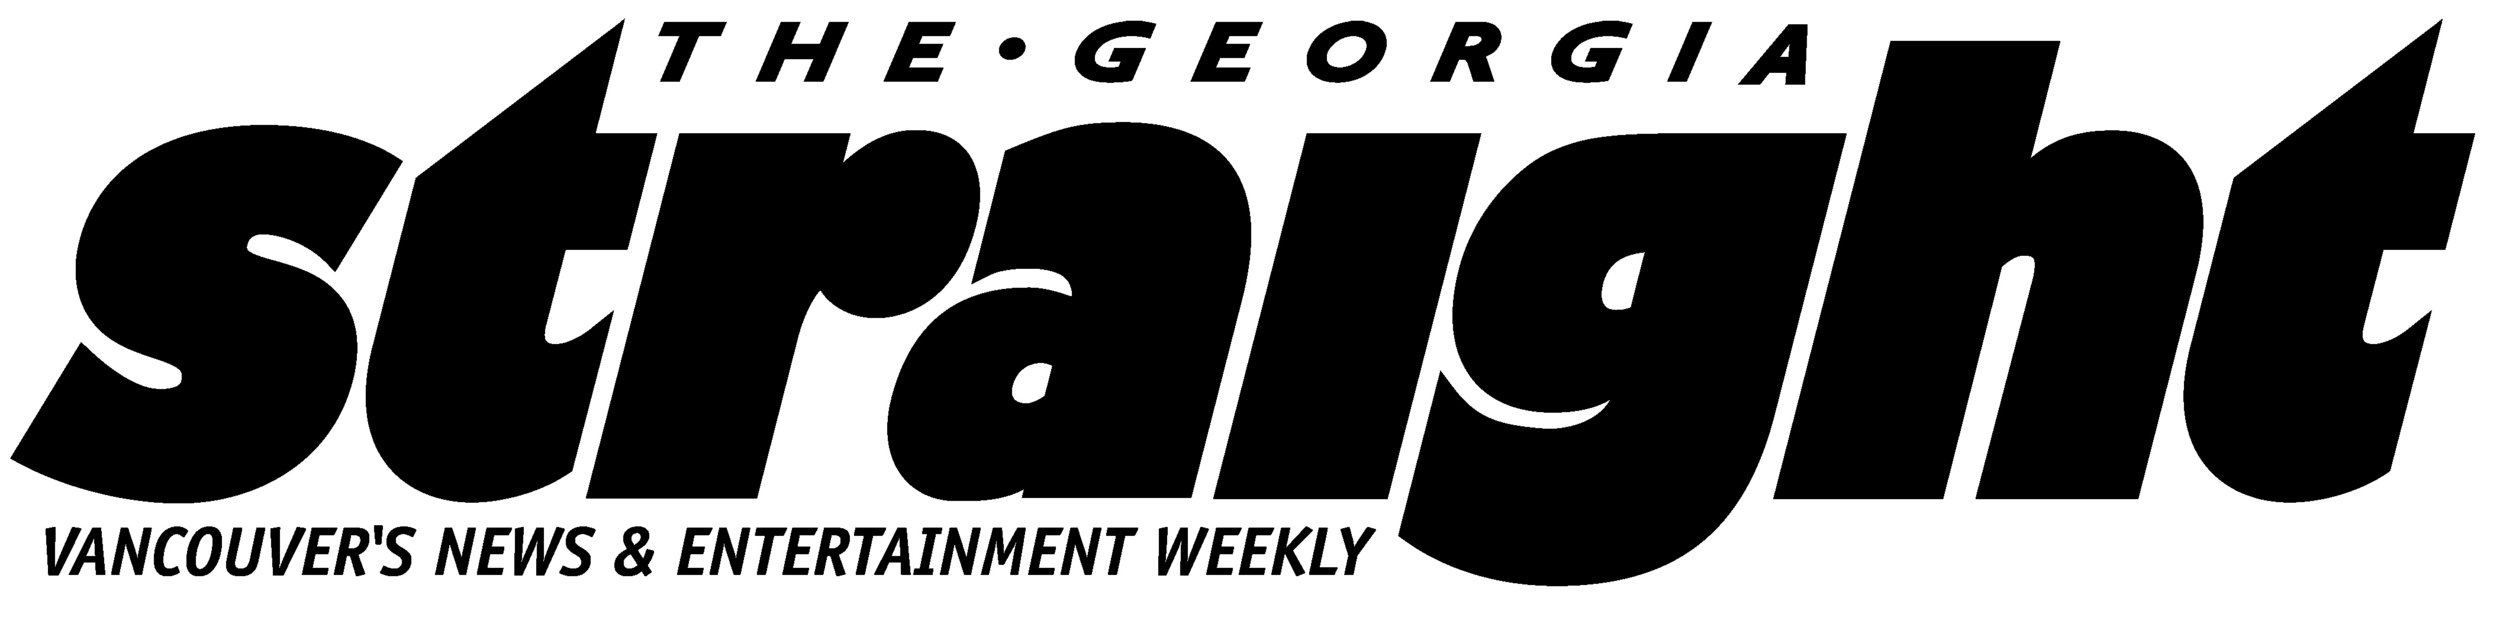 Georgia-Straight-logo-.jpeg